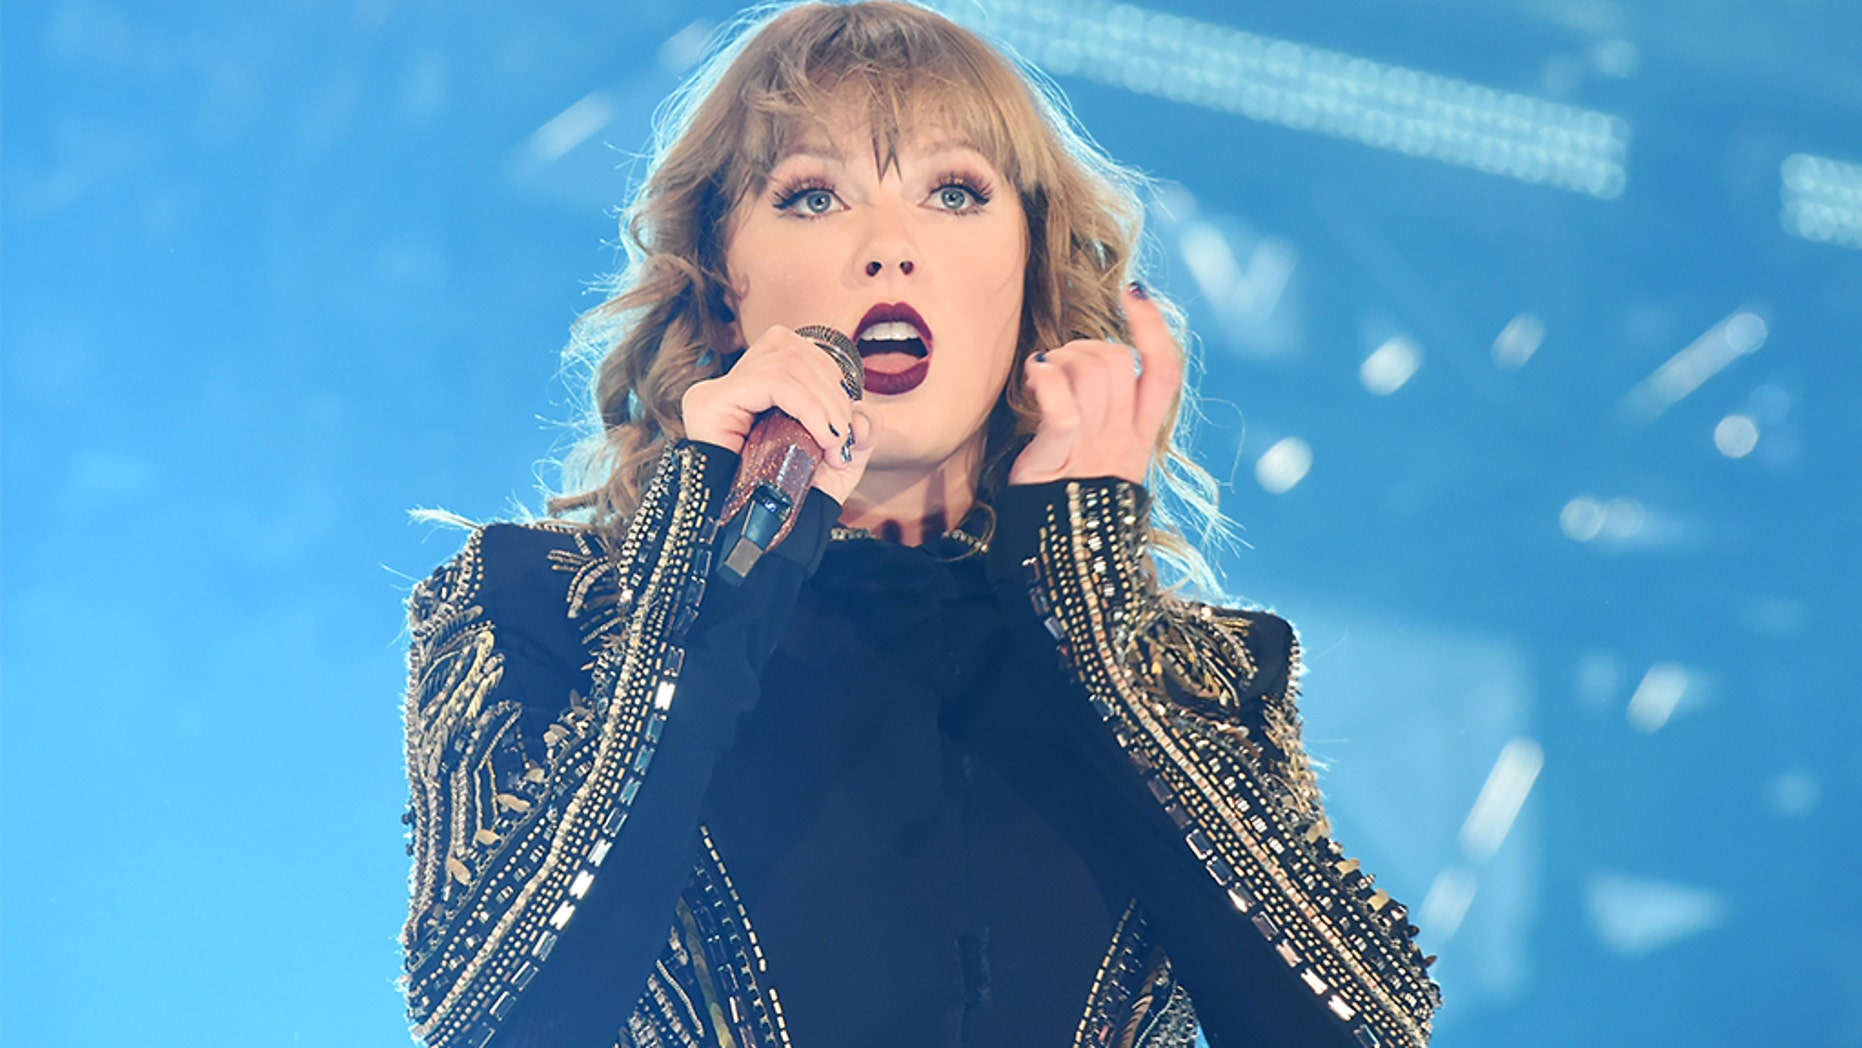 Taylor Swift 'uses facial recognition at shows to detect her stalkers'